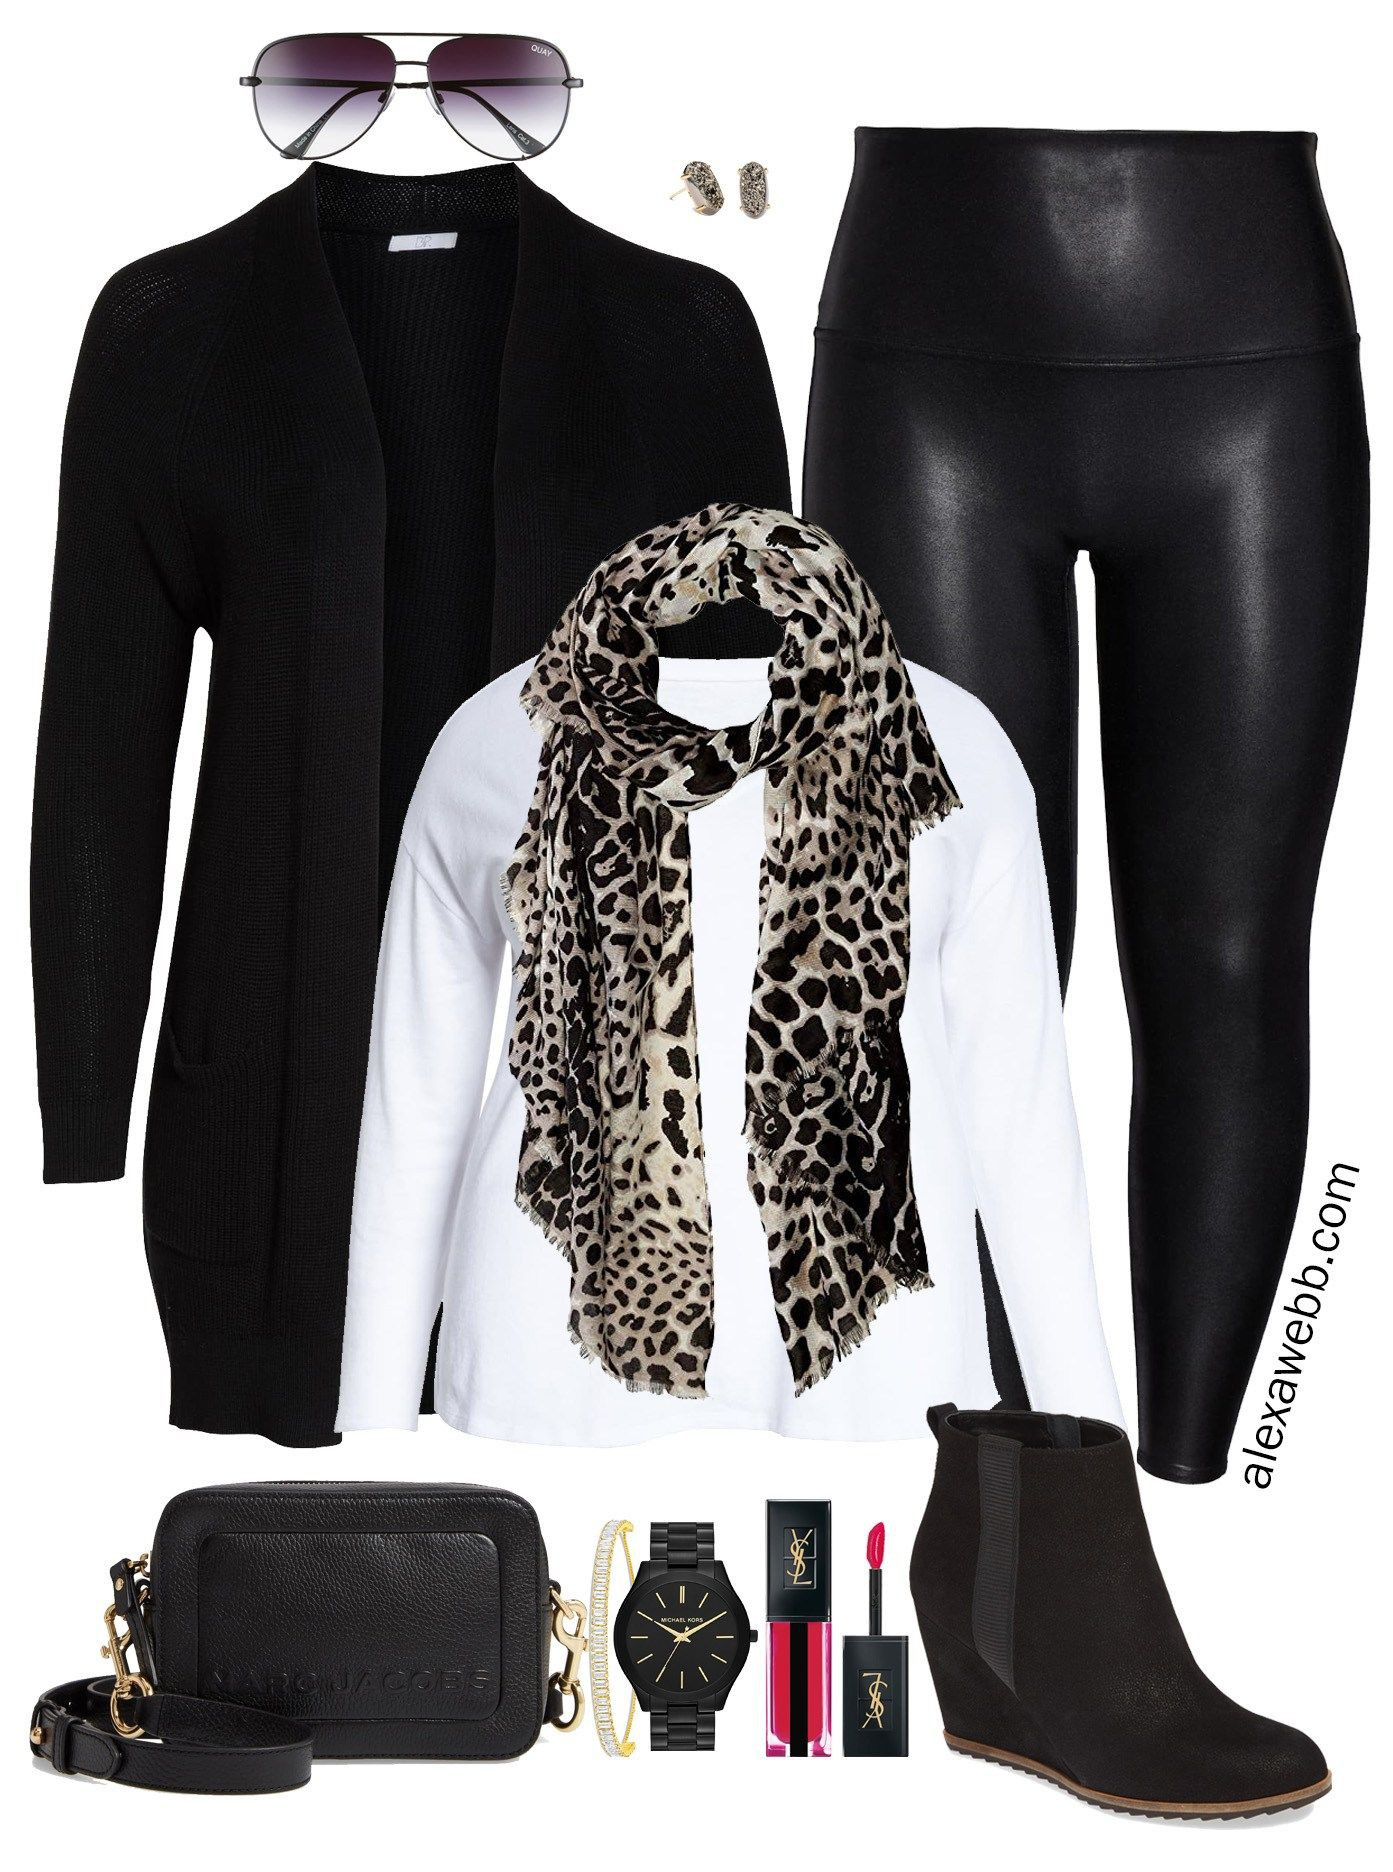 Leather legging outfit plus size